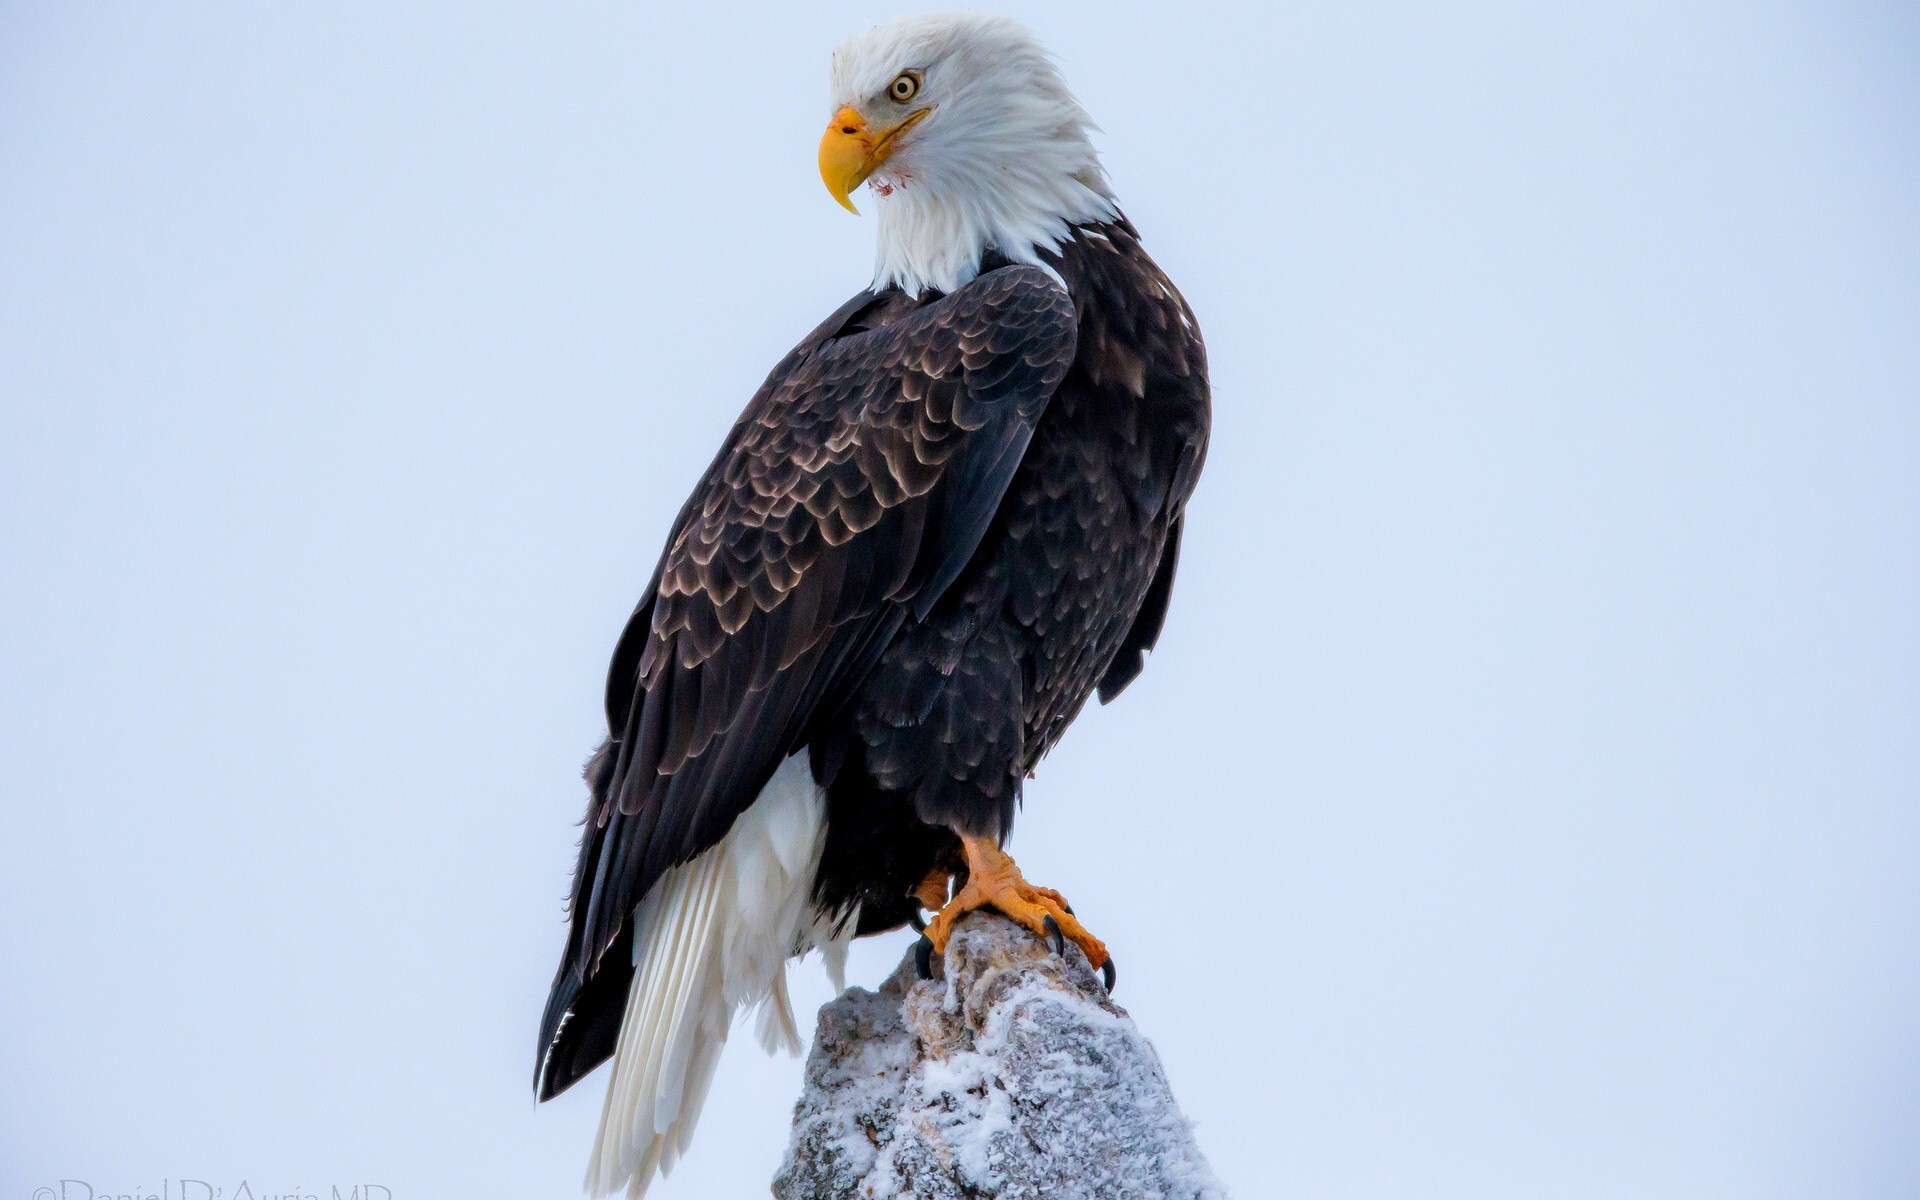 eagle 1280x1024 wallpaper - photo #9